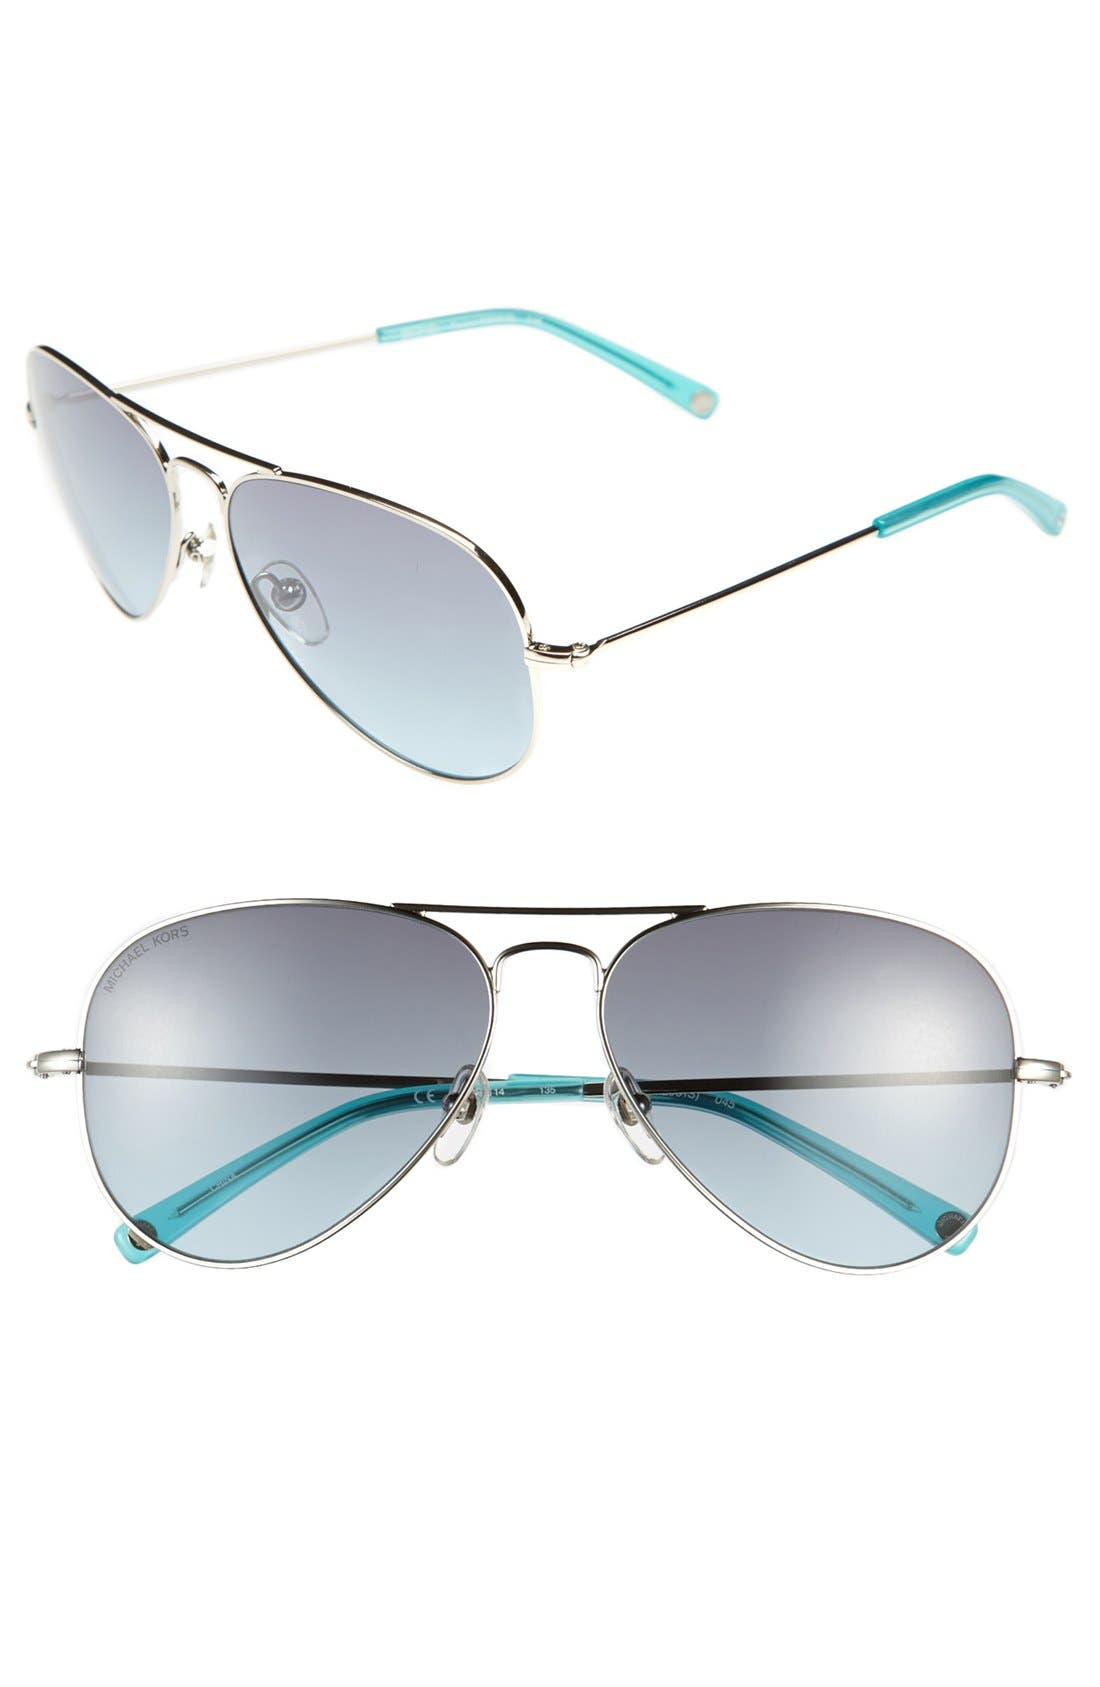 Alternate Image 1 Selected - MICHAEL Michael Kors 'Rachel' 58mm Sunglasses